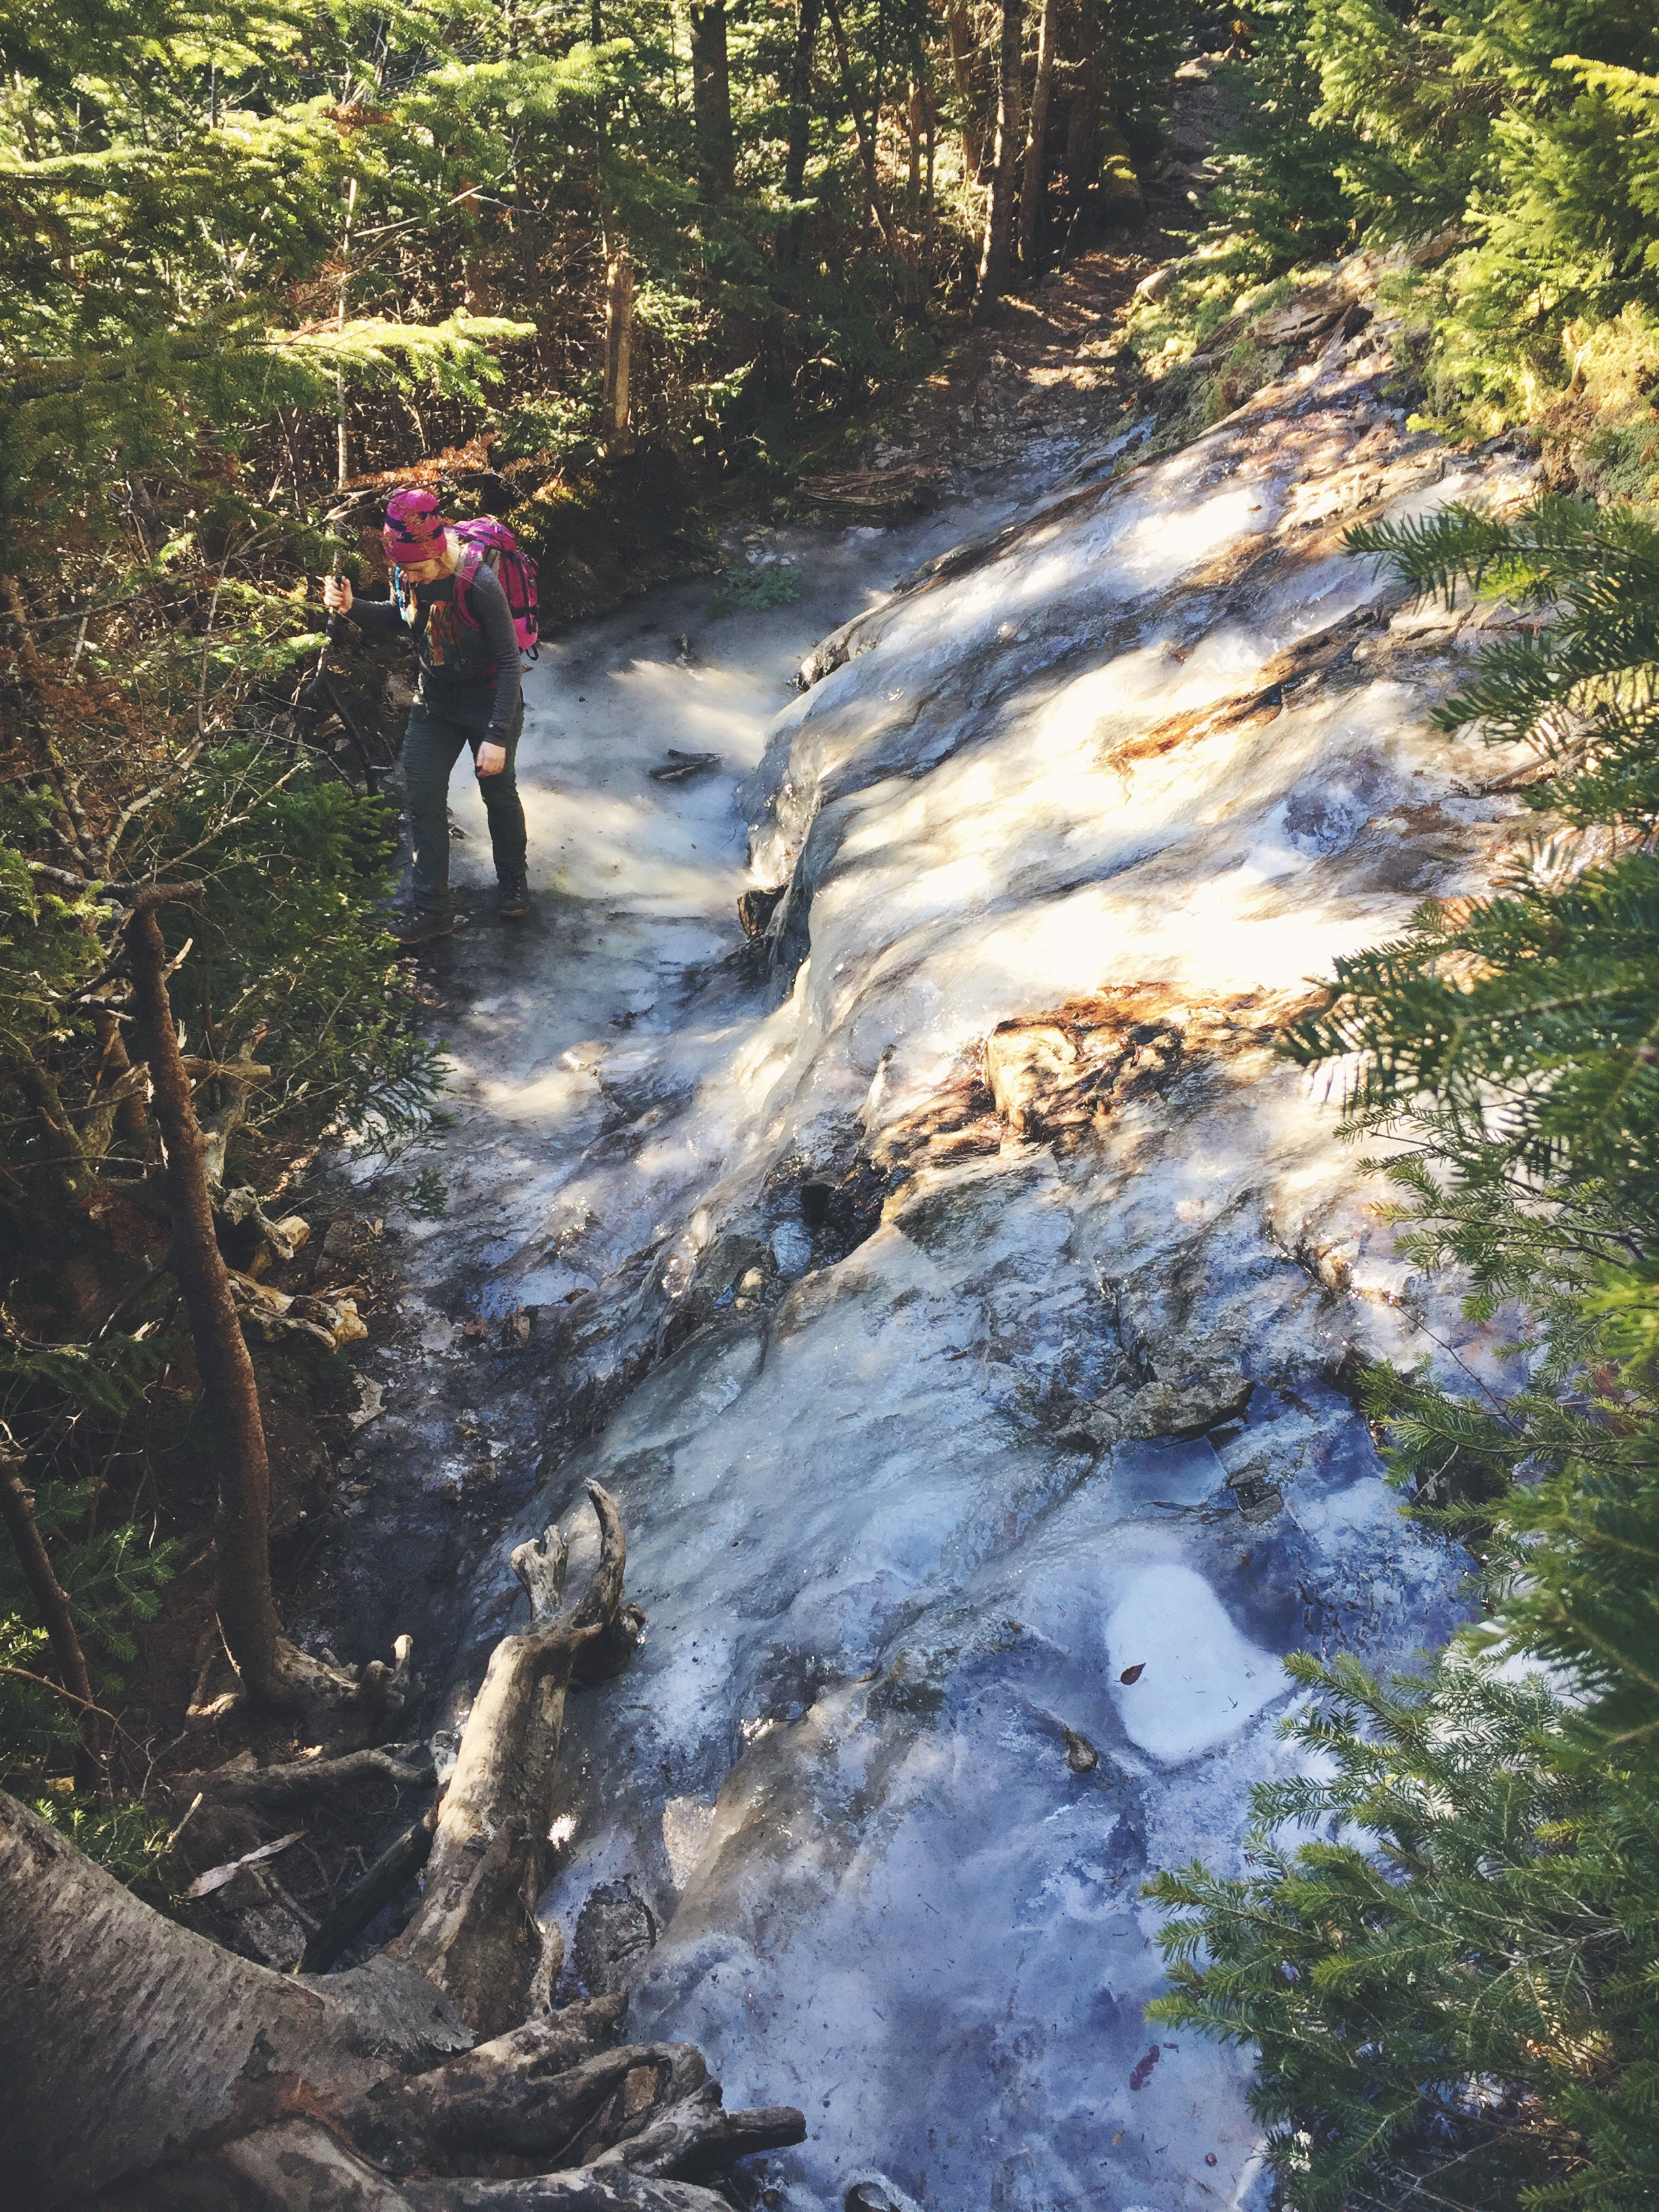 Even with the unseasonably warm November temps, the trail was still littered with gnarly and unavoidable ice slides like the one pictured here.